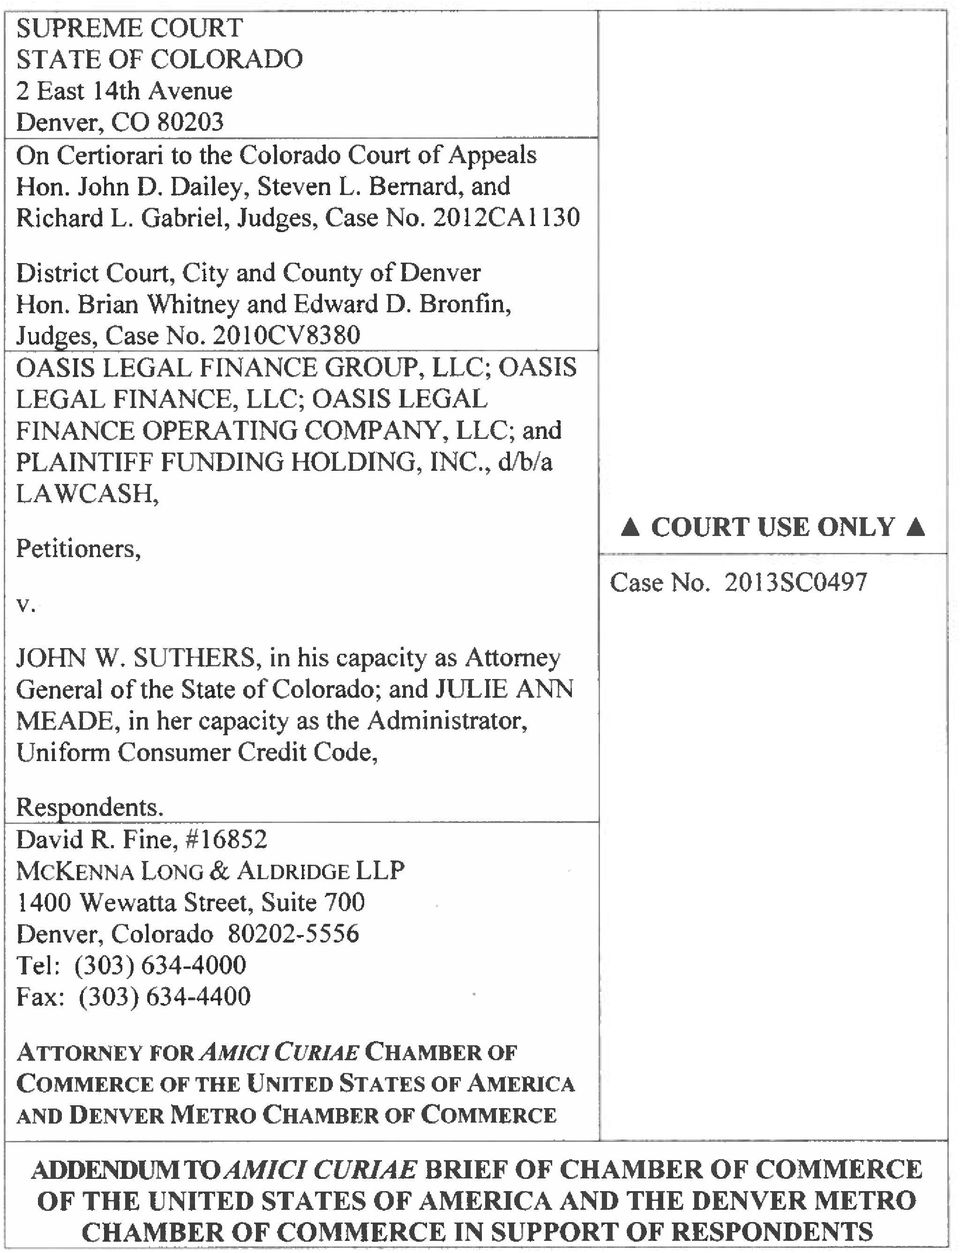 2010CV8380 OASIS LEGAL FINANCE GROUP, LLC; OASIS LEGAL FINANCE, LLC; OASIS LEGAL FINANCE OPERATING COMPANY, LLC; and PLAINTIFF FUNDING HOLDING, INC., d/b/a LAWCASH, Petitioners, v.